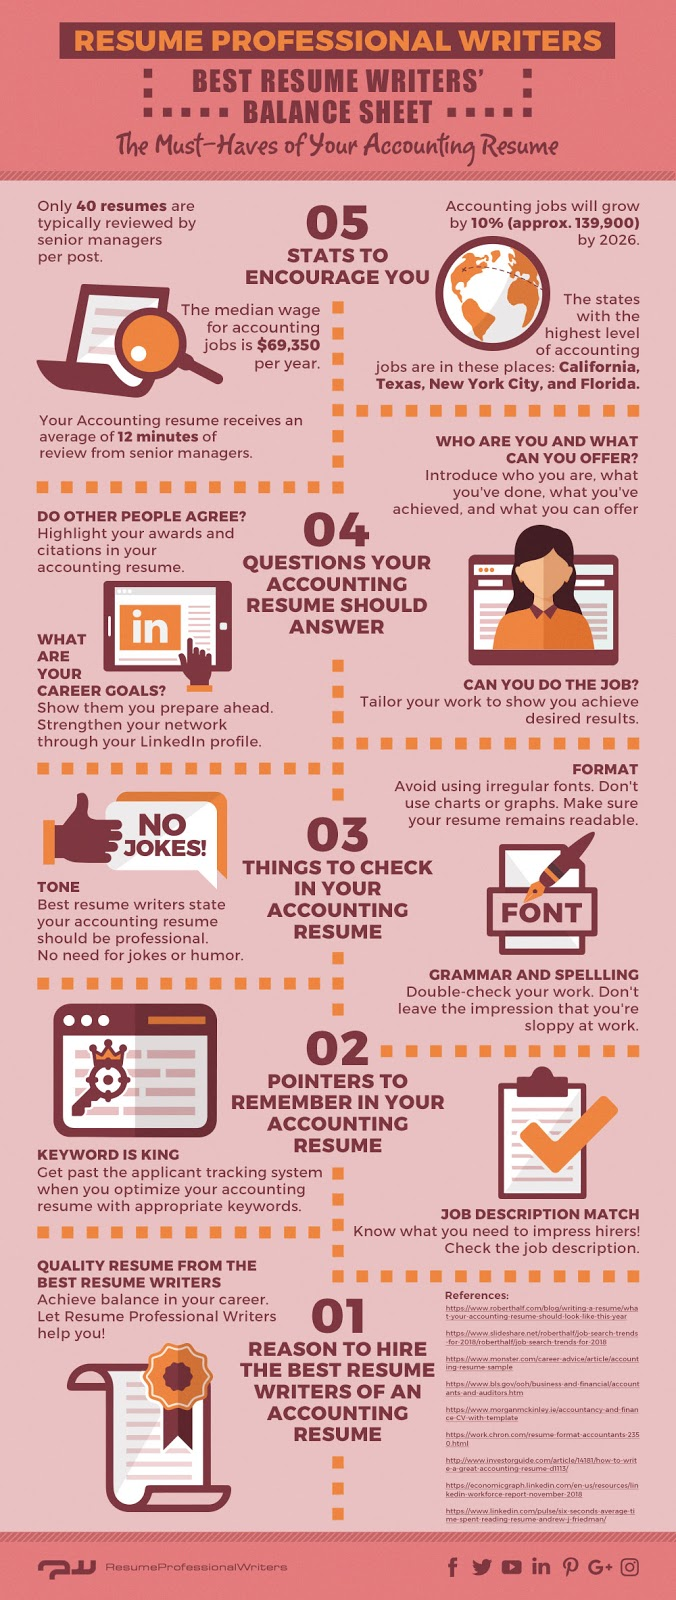 best accounting resume best accounting resumes 2019 best accounting resume format best accounting resume templates best accounting resume sample best accounting resume examples best accounting resume objective best accounting resumes 2020 best accounting resumes 2018 best accounting resume services